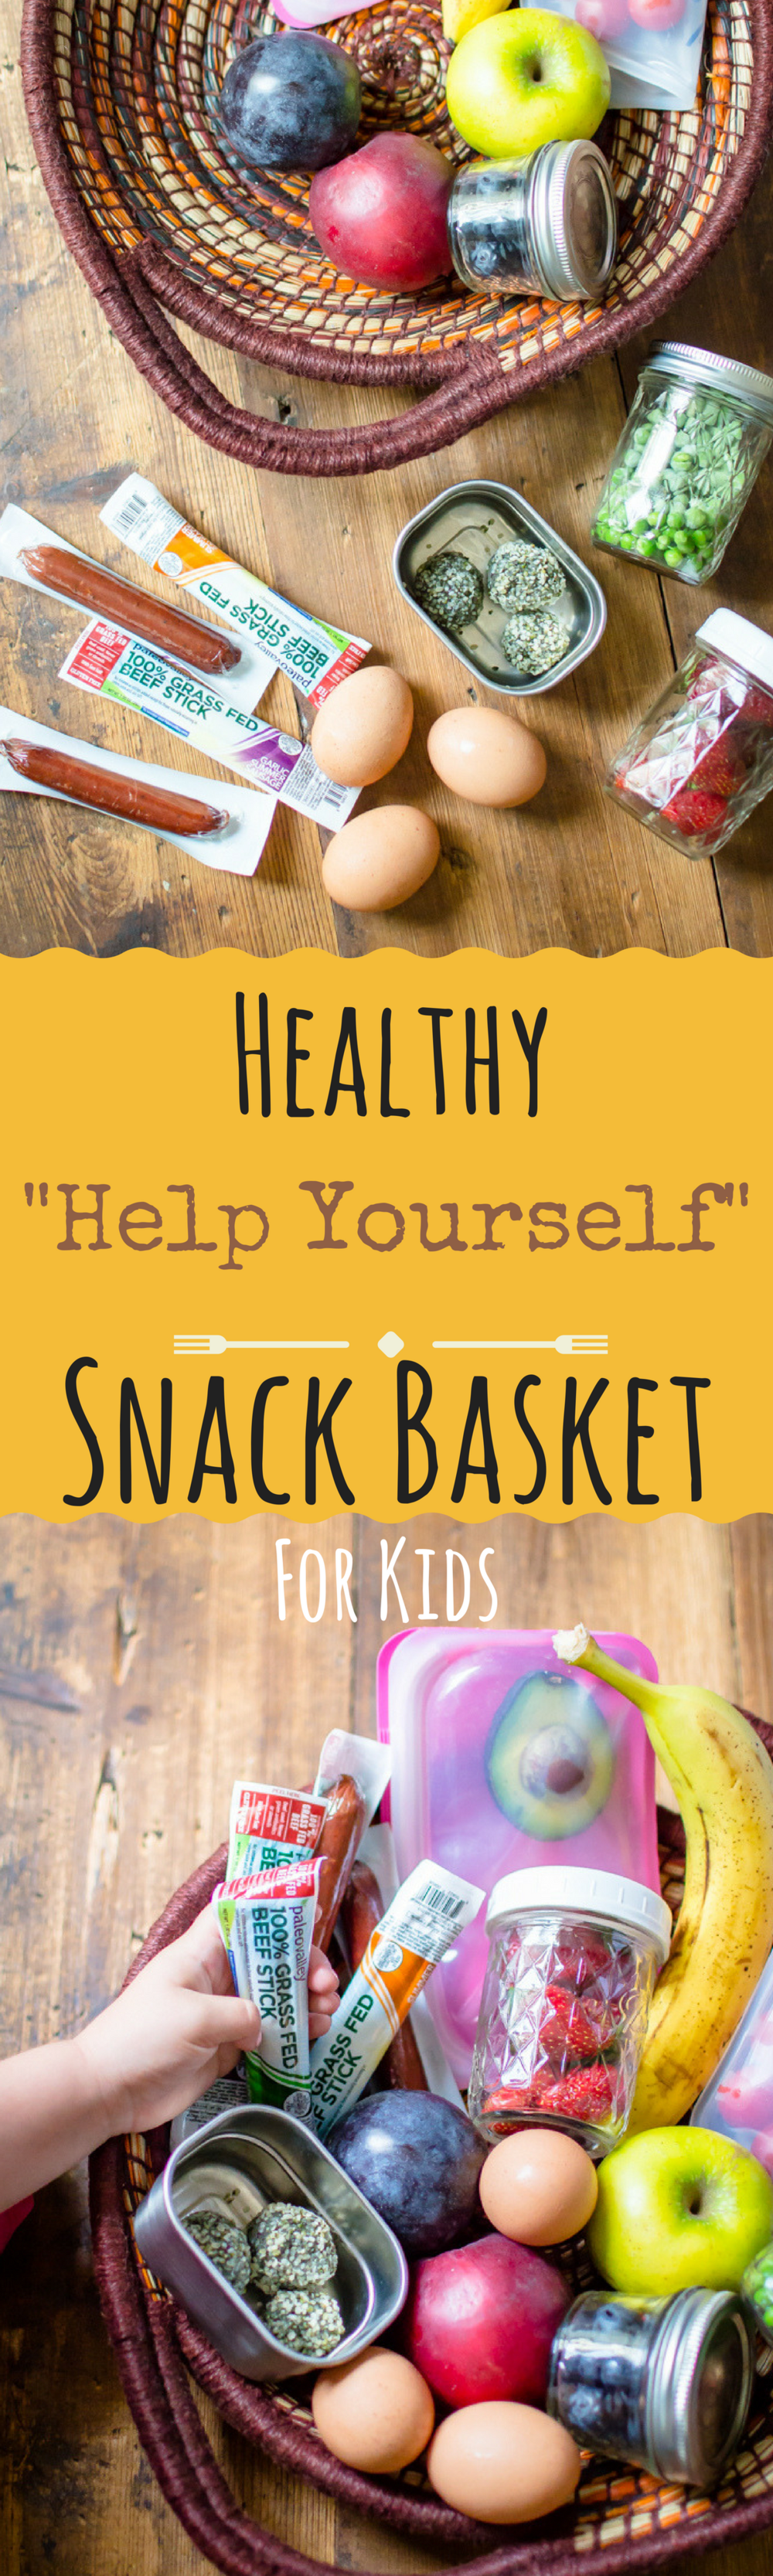 "Healthy ""Help Yourself"" Snack Basket for Kids"